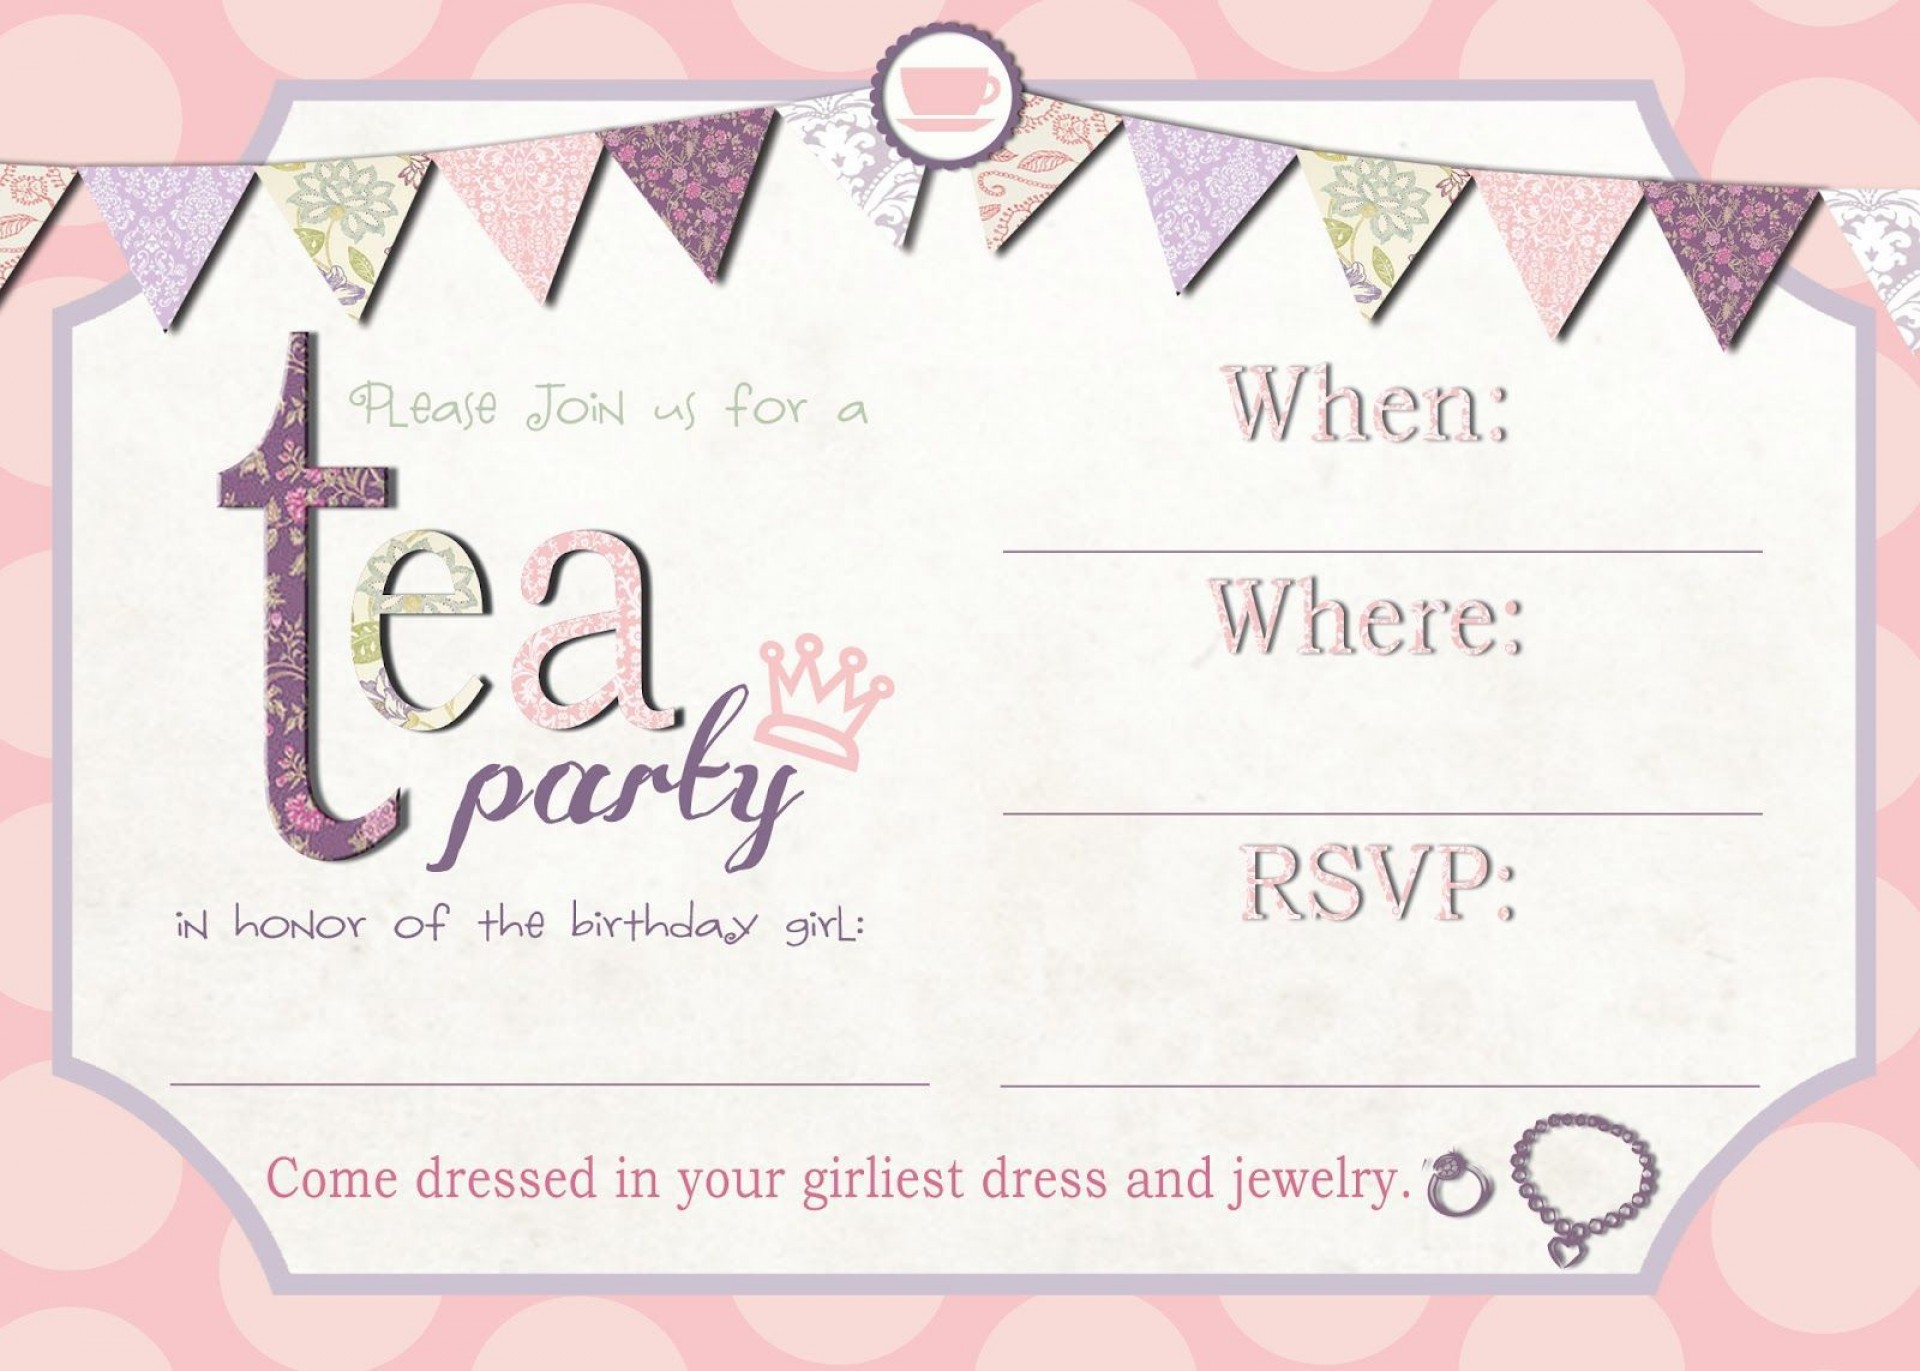 001 Awful Tea Party Invitation Template High Resolution  Templates Free Download Bridal Shower1920